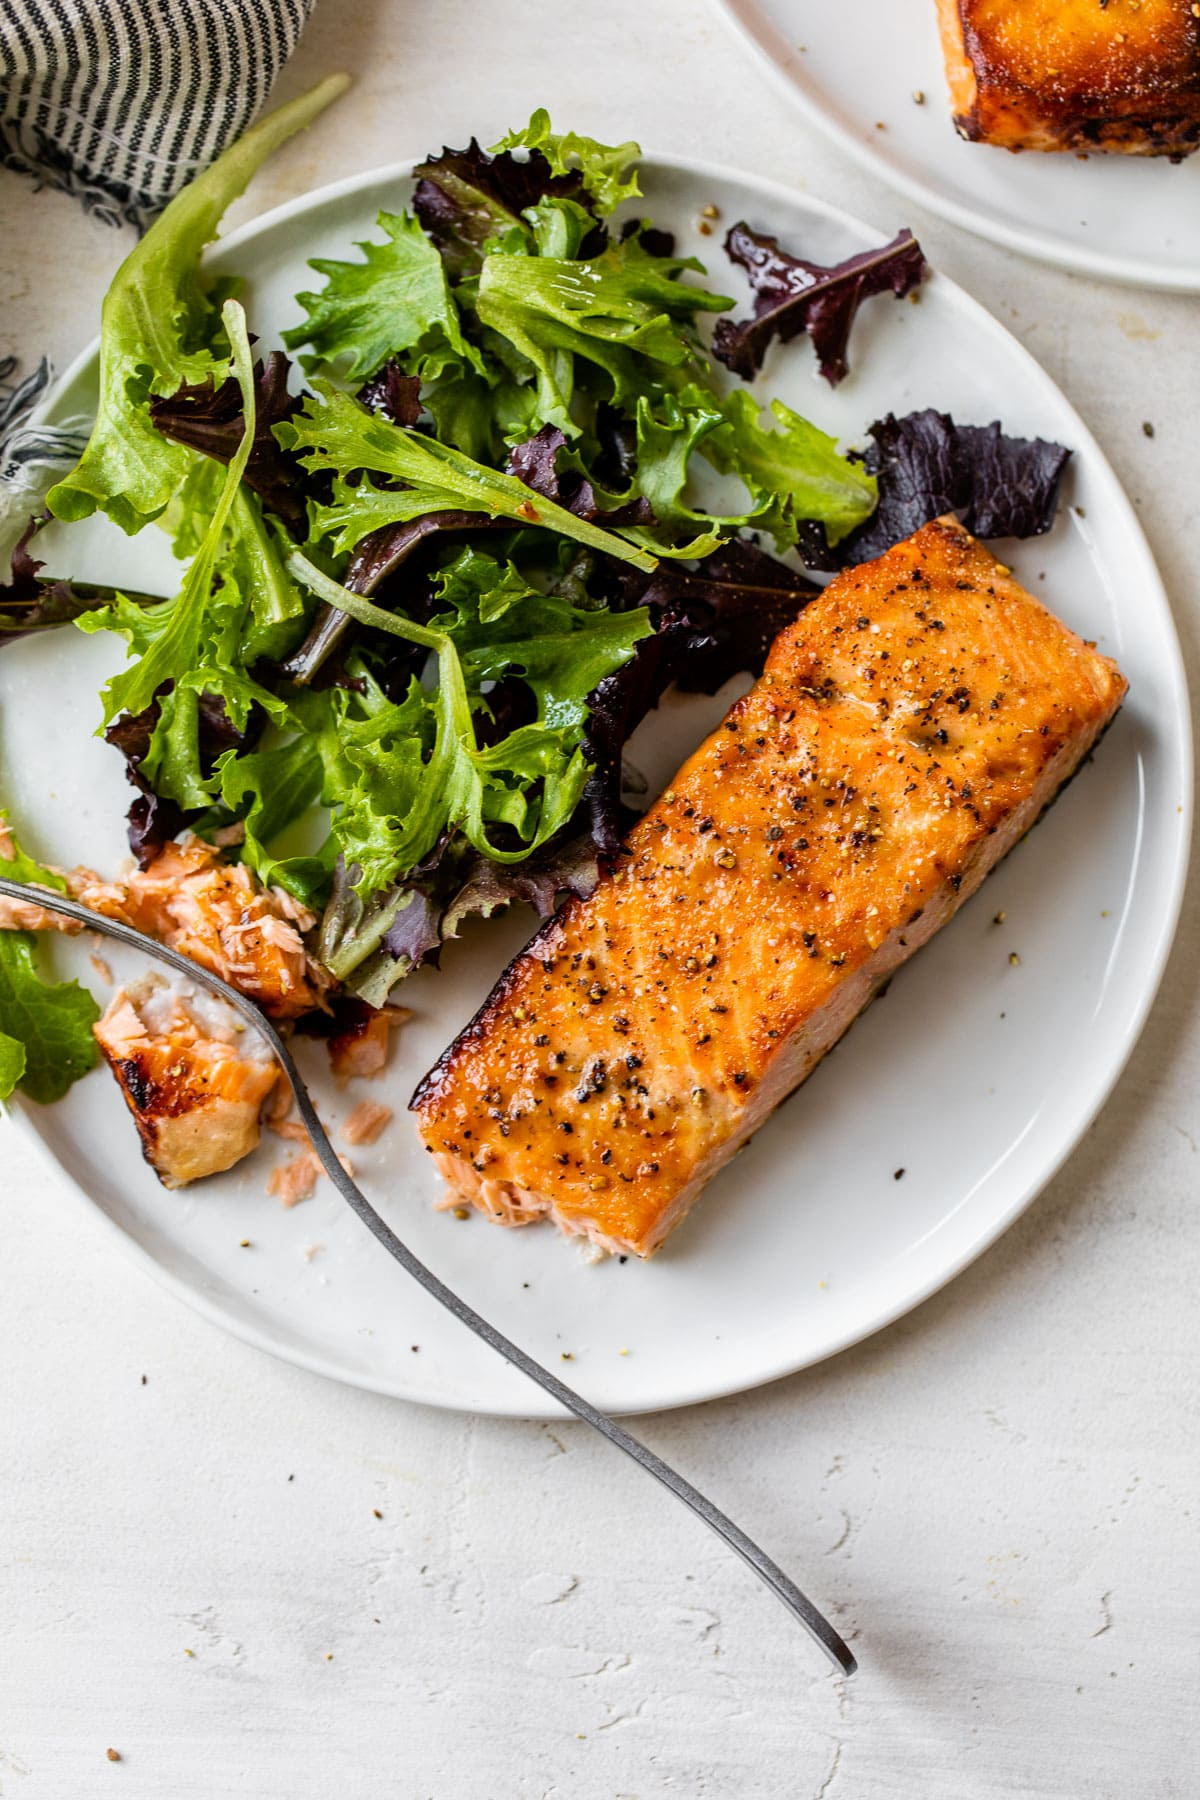 Salad and air fryer salmon on a plate